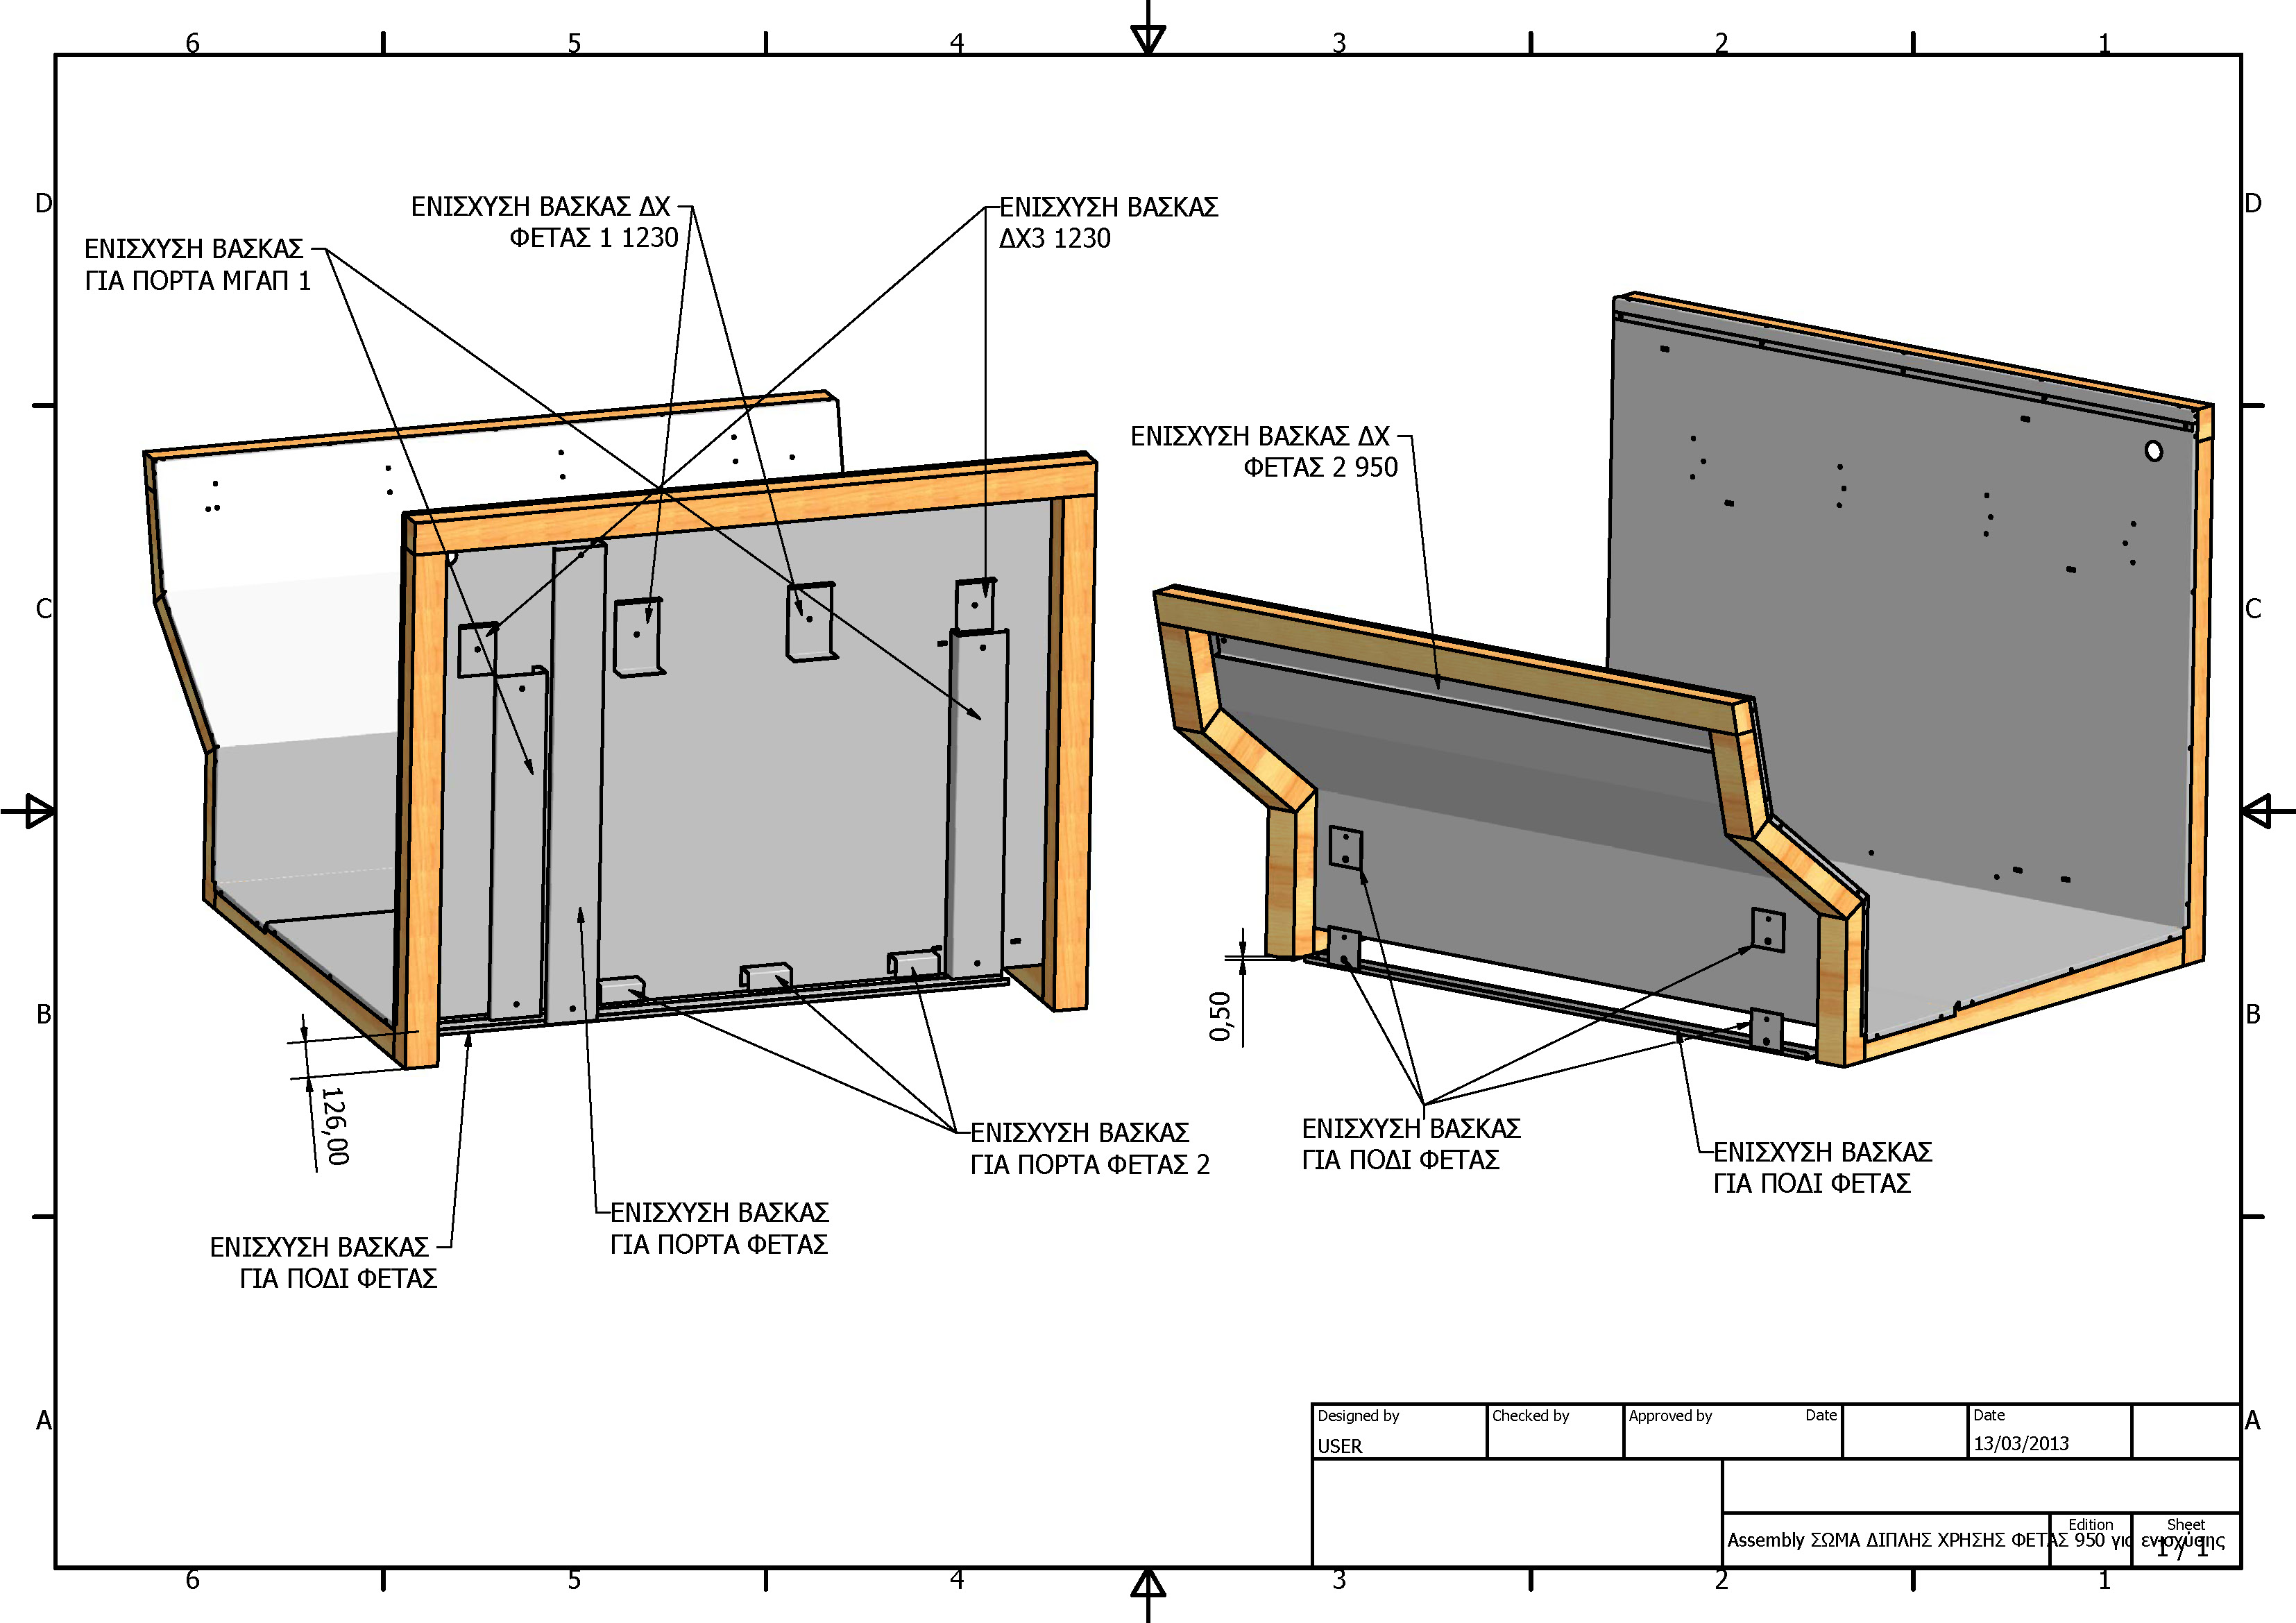 MANUFACTURING DRAWINGS (2).jpg